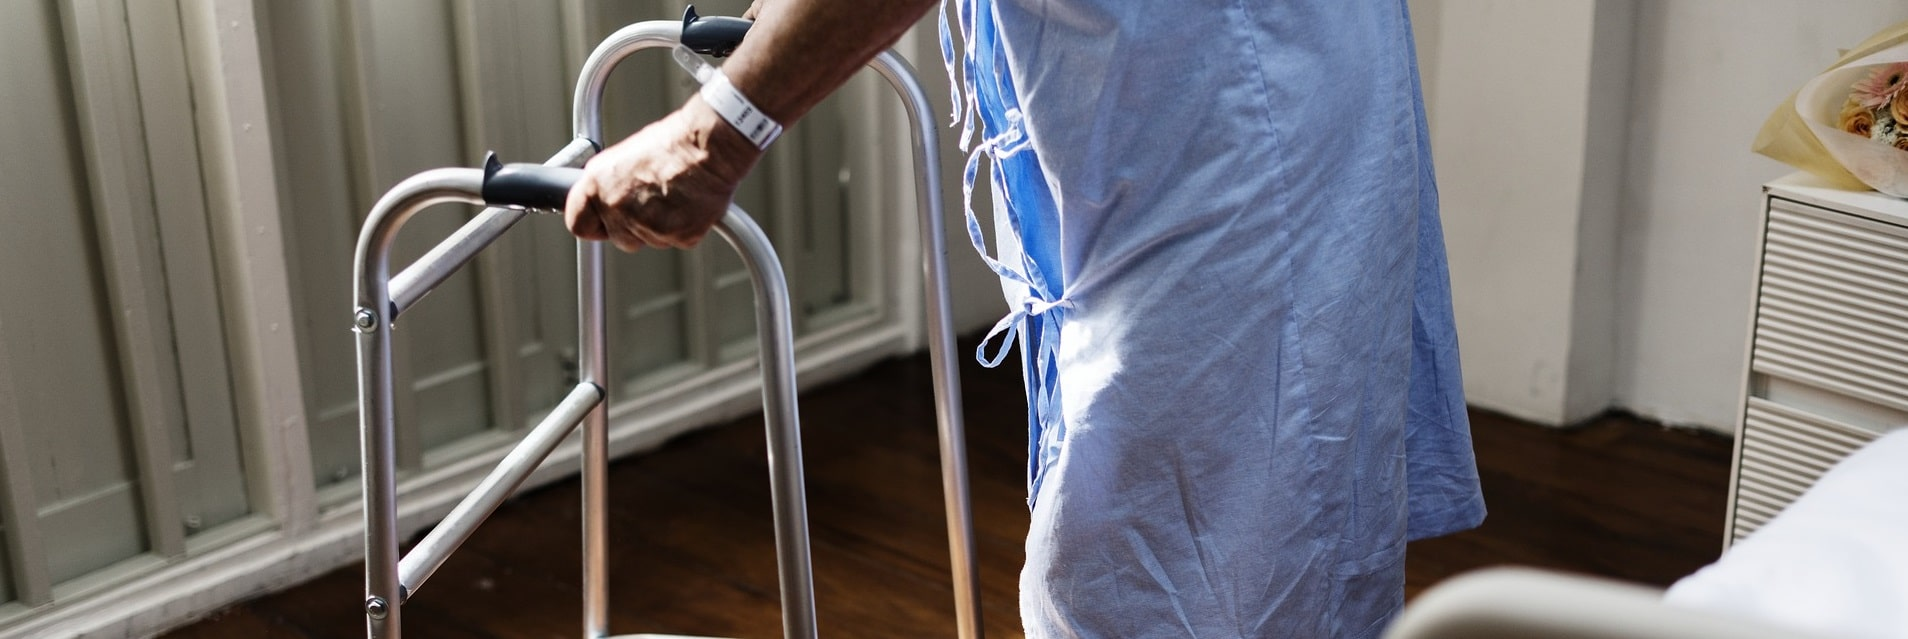 Transition of care from hospital to home in Orange, CA